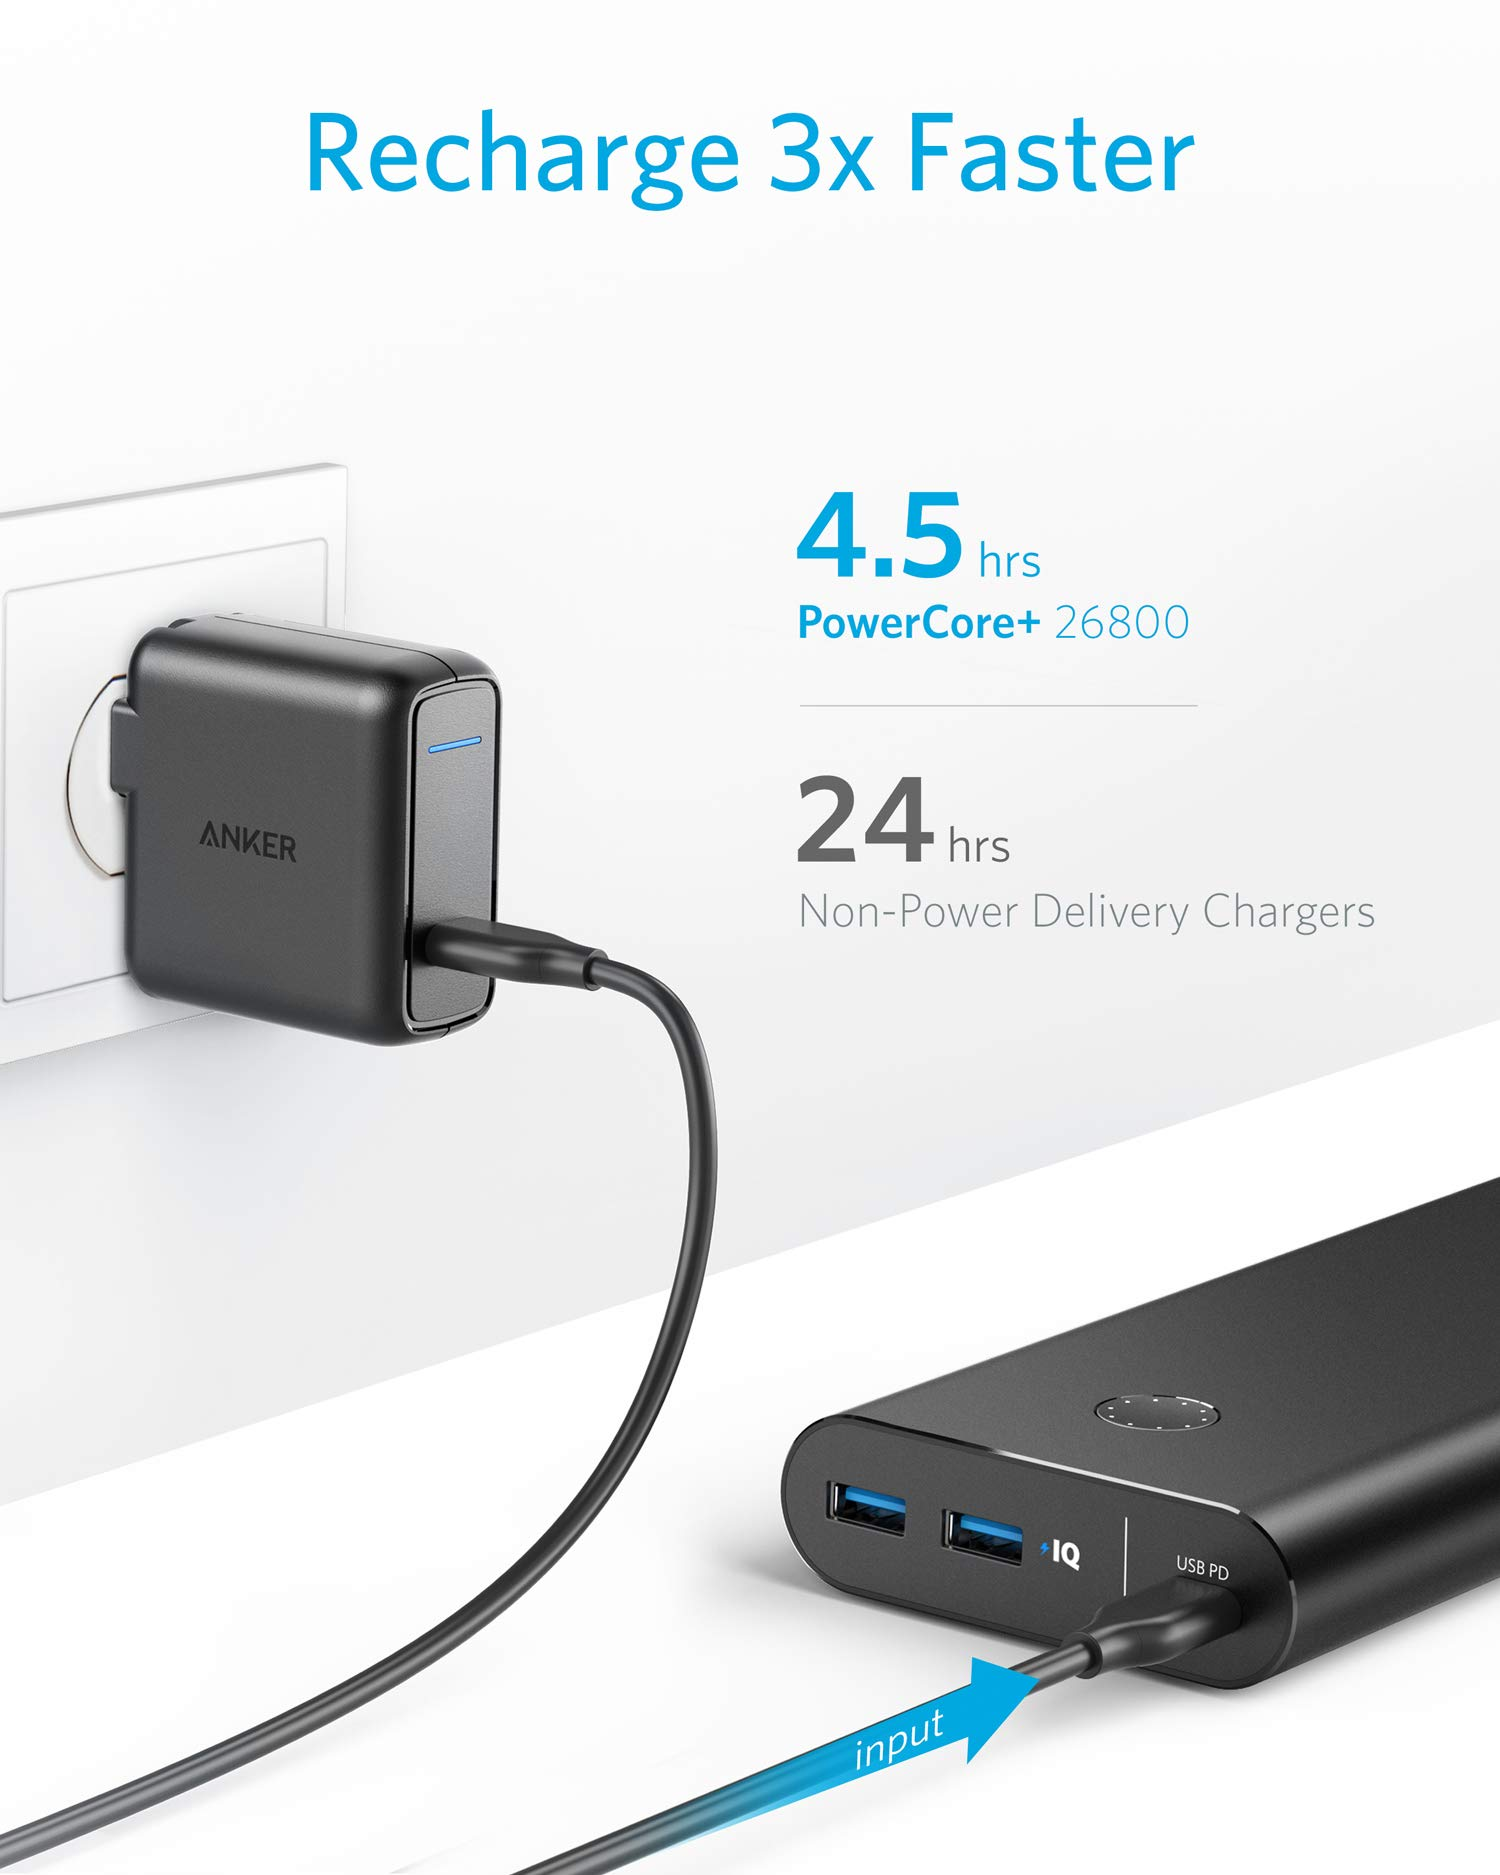 Anker PowerCore+ 26800 PD with 30W Power Delivery Charger, Portable Charger Bundle for MacBook Air / iPad Pro 2018, iPhone XS Max / X / 8, Nexus 5X / 6P, and USB Type-C Laptops with Power Delivery by Anker (Image #4)